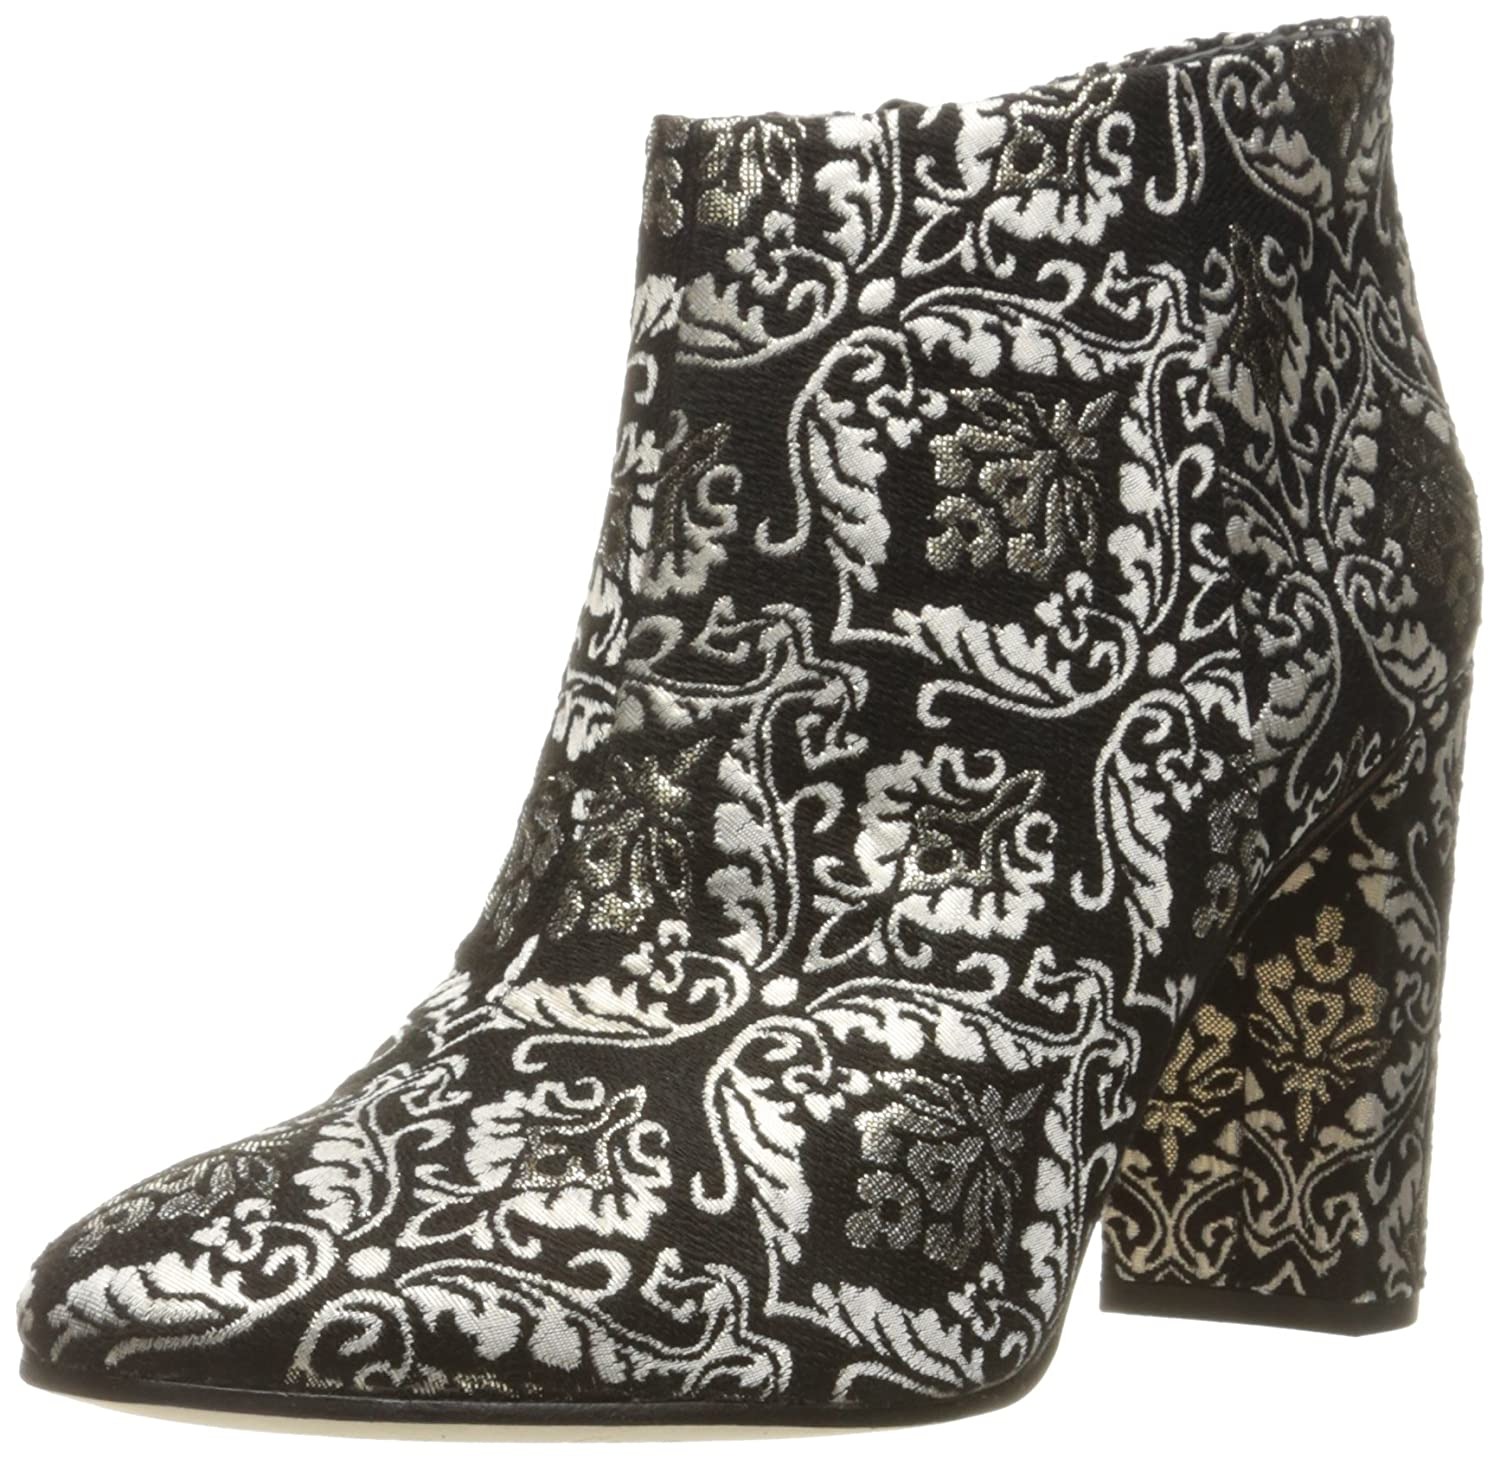 5e2147975 Sam Edelman Women s Cambell Cambell Cambell Ankle Bootie B01M593JFP 8 B(M)  US